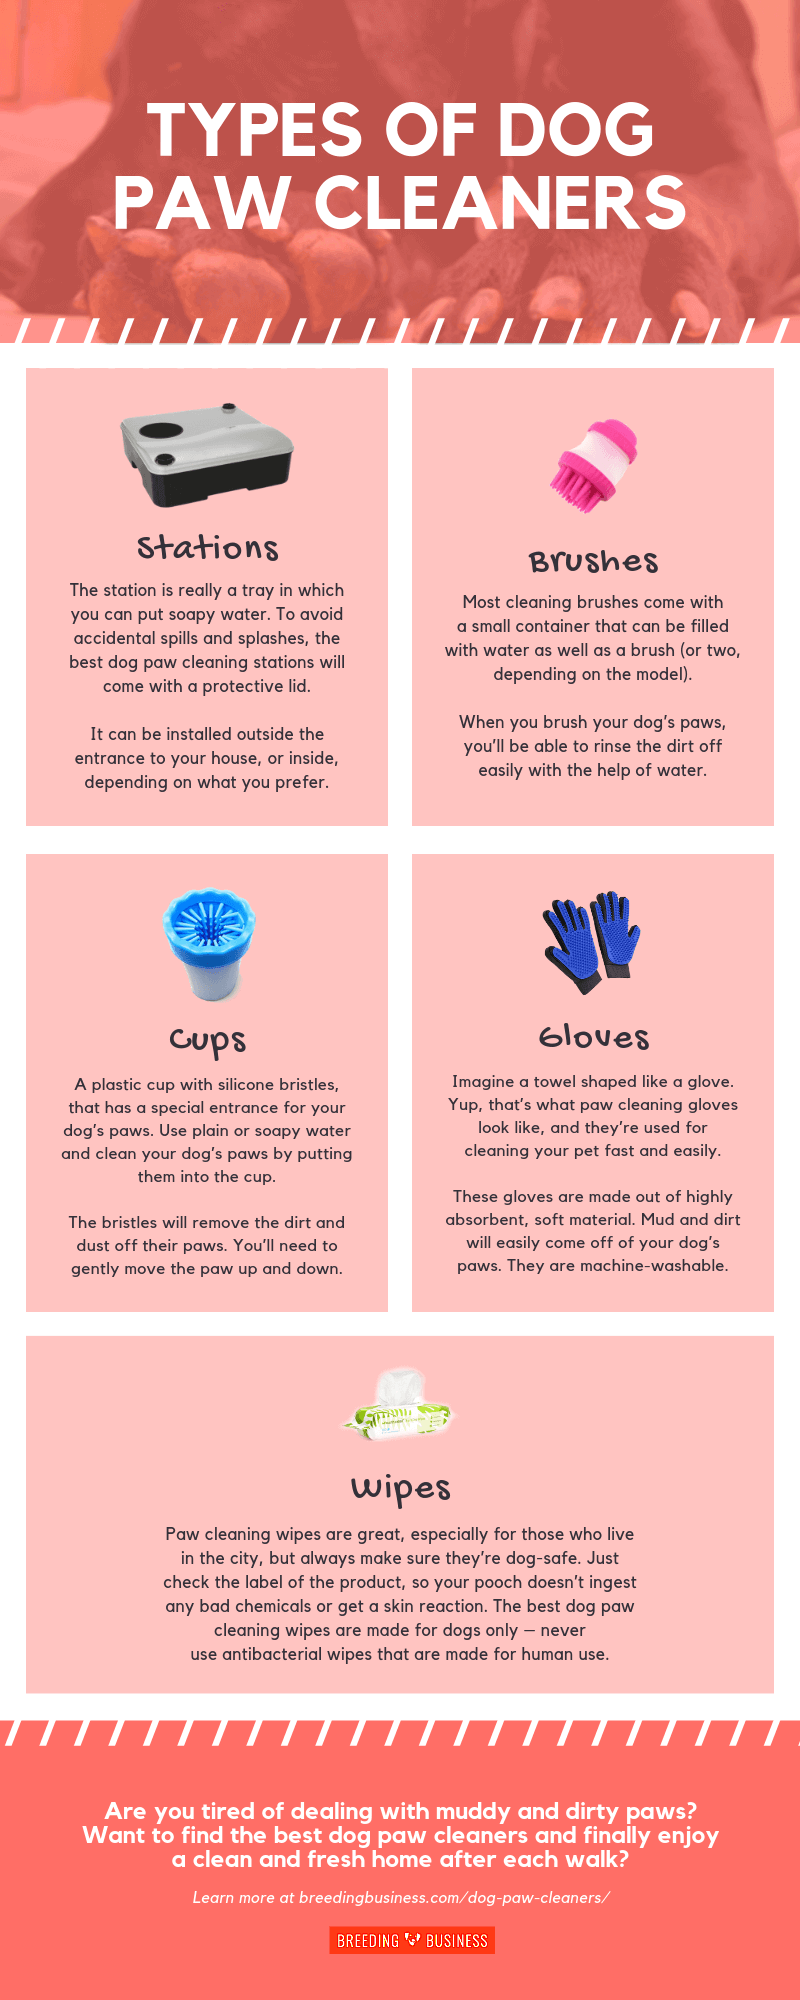 Types of Dog Paw Cleaners (Infographic)